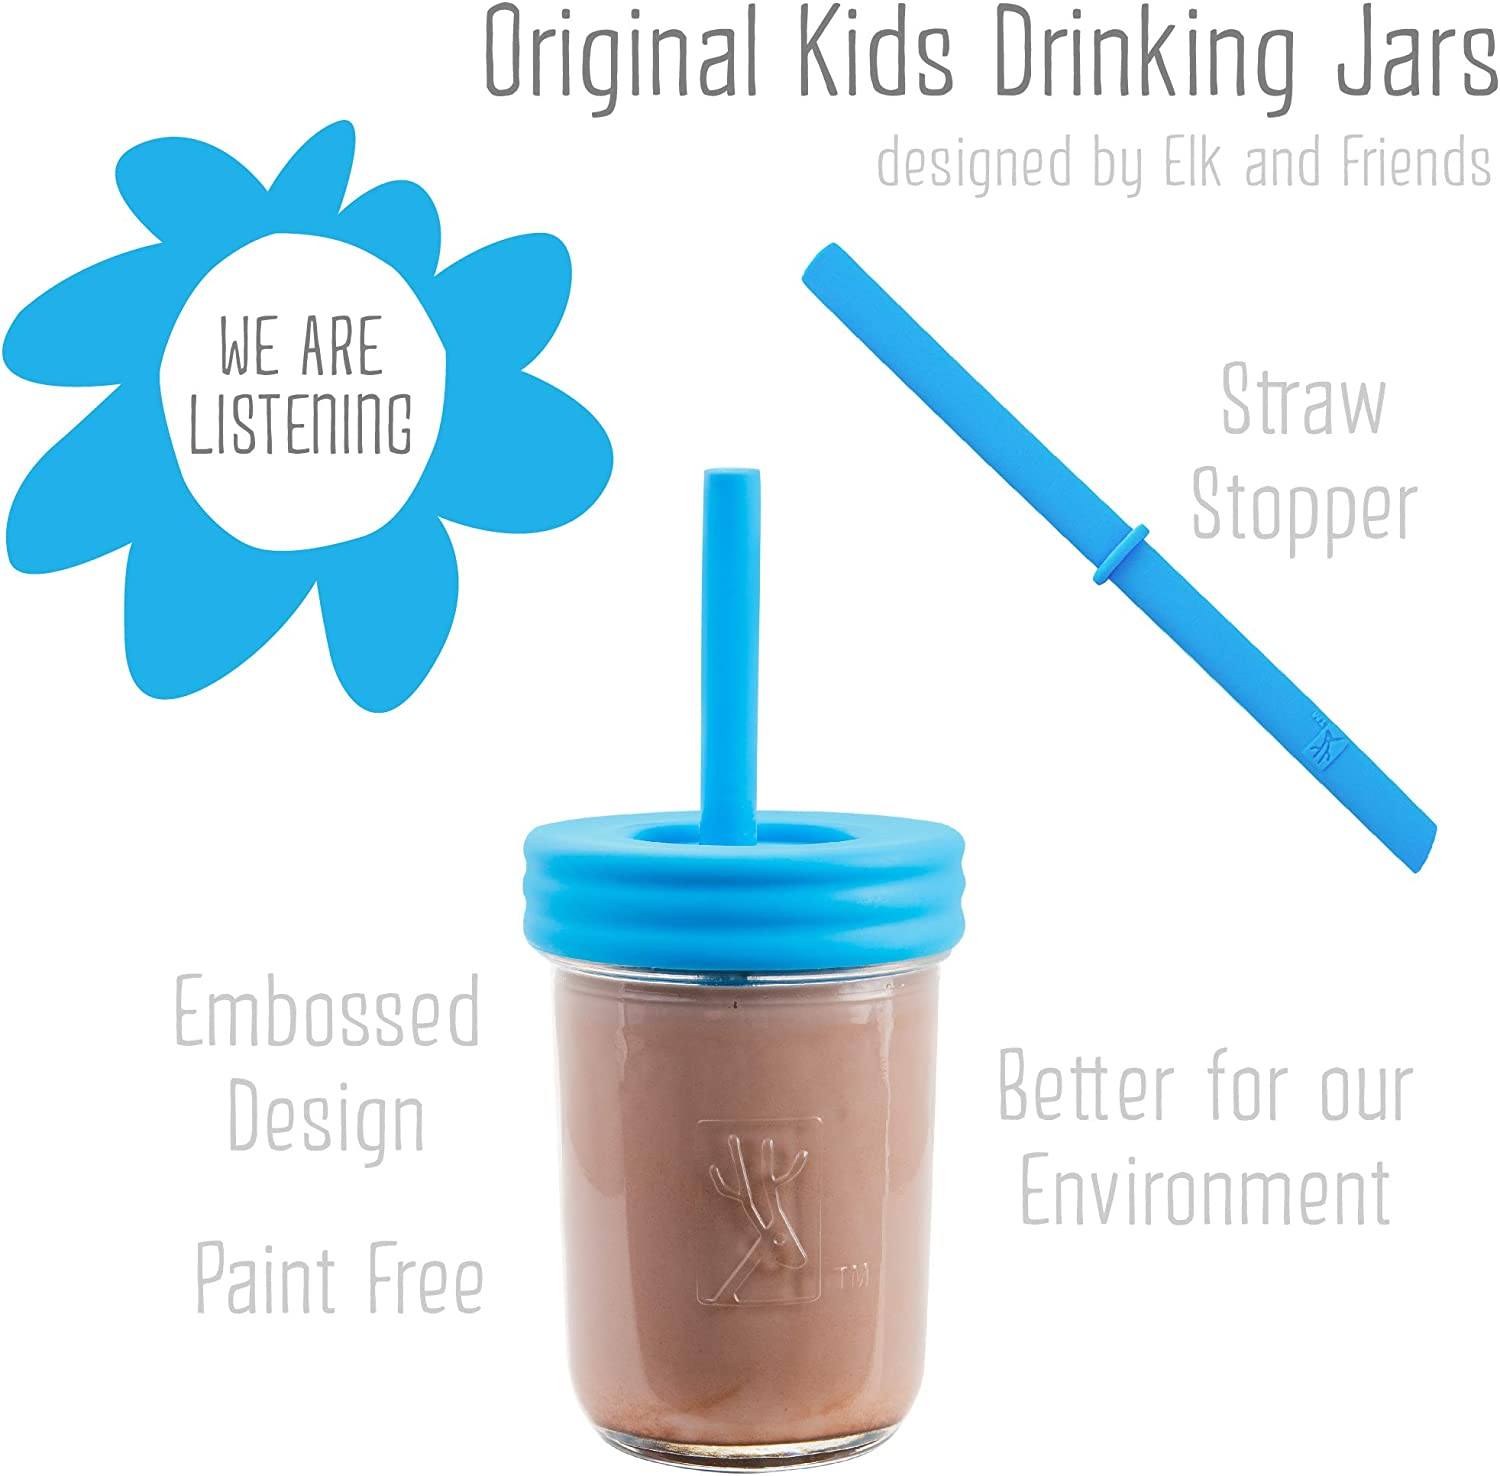 Smoothie Cups The Original Glass Mason jars 8 oz with Silicone Sleeves /& Silicone Straws with Stoppers Spill Proof Sippy Cups for Toddlers Elk and Friends Kids /& Toddler Cups